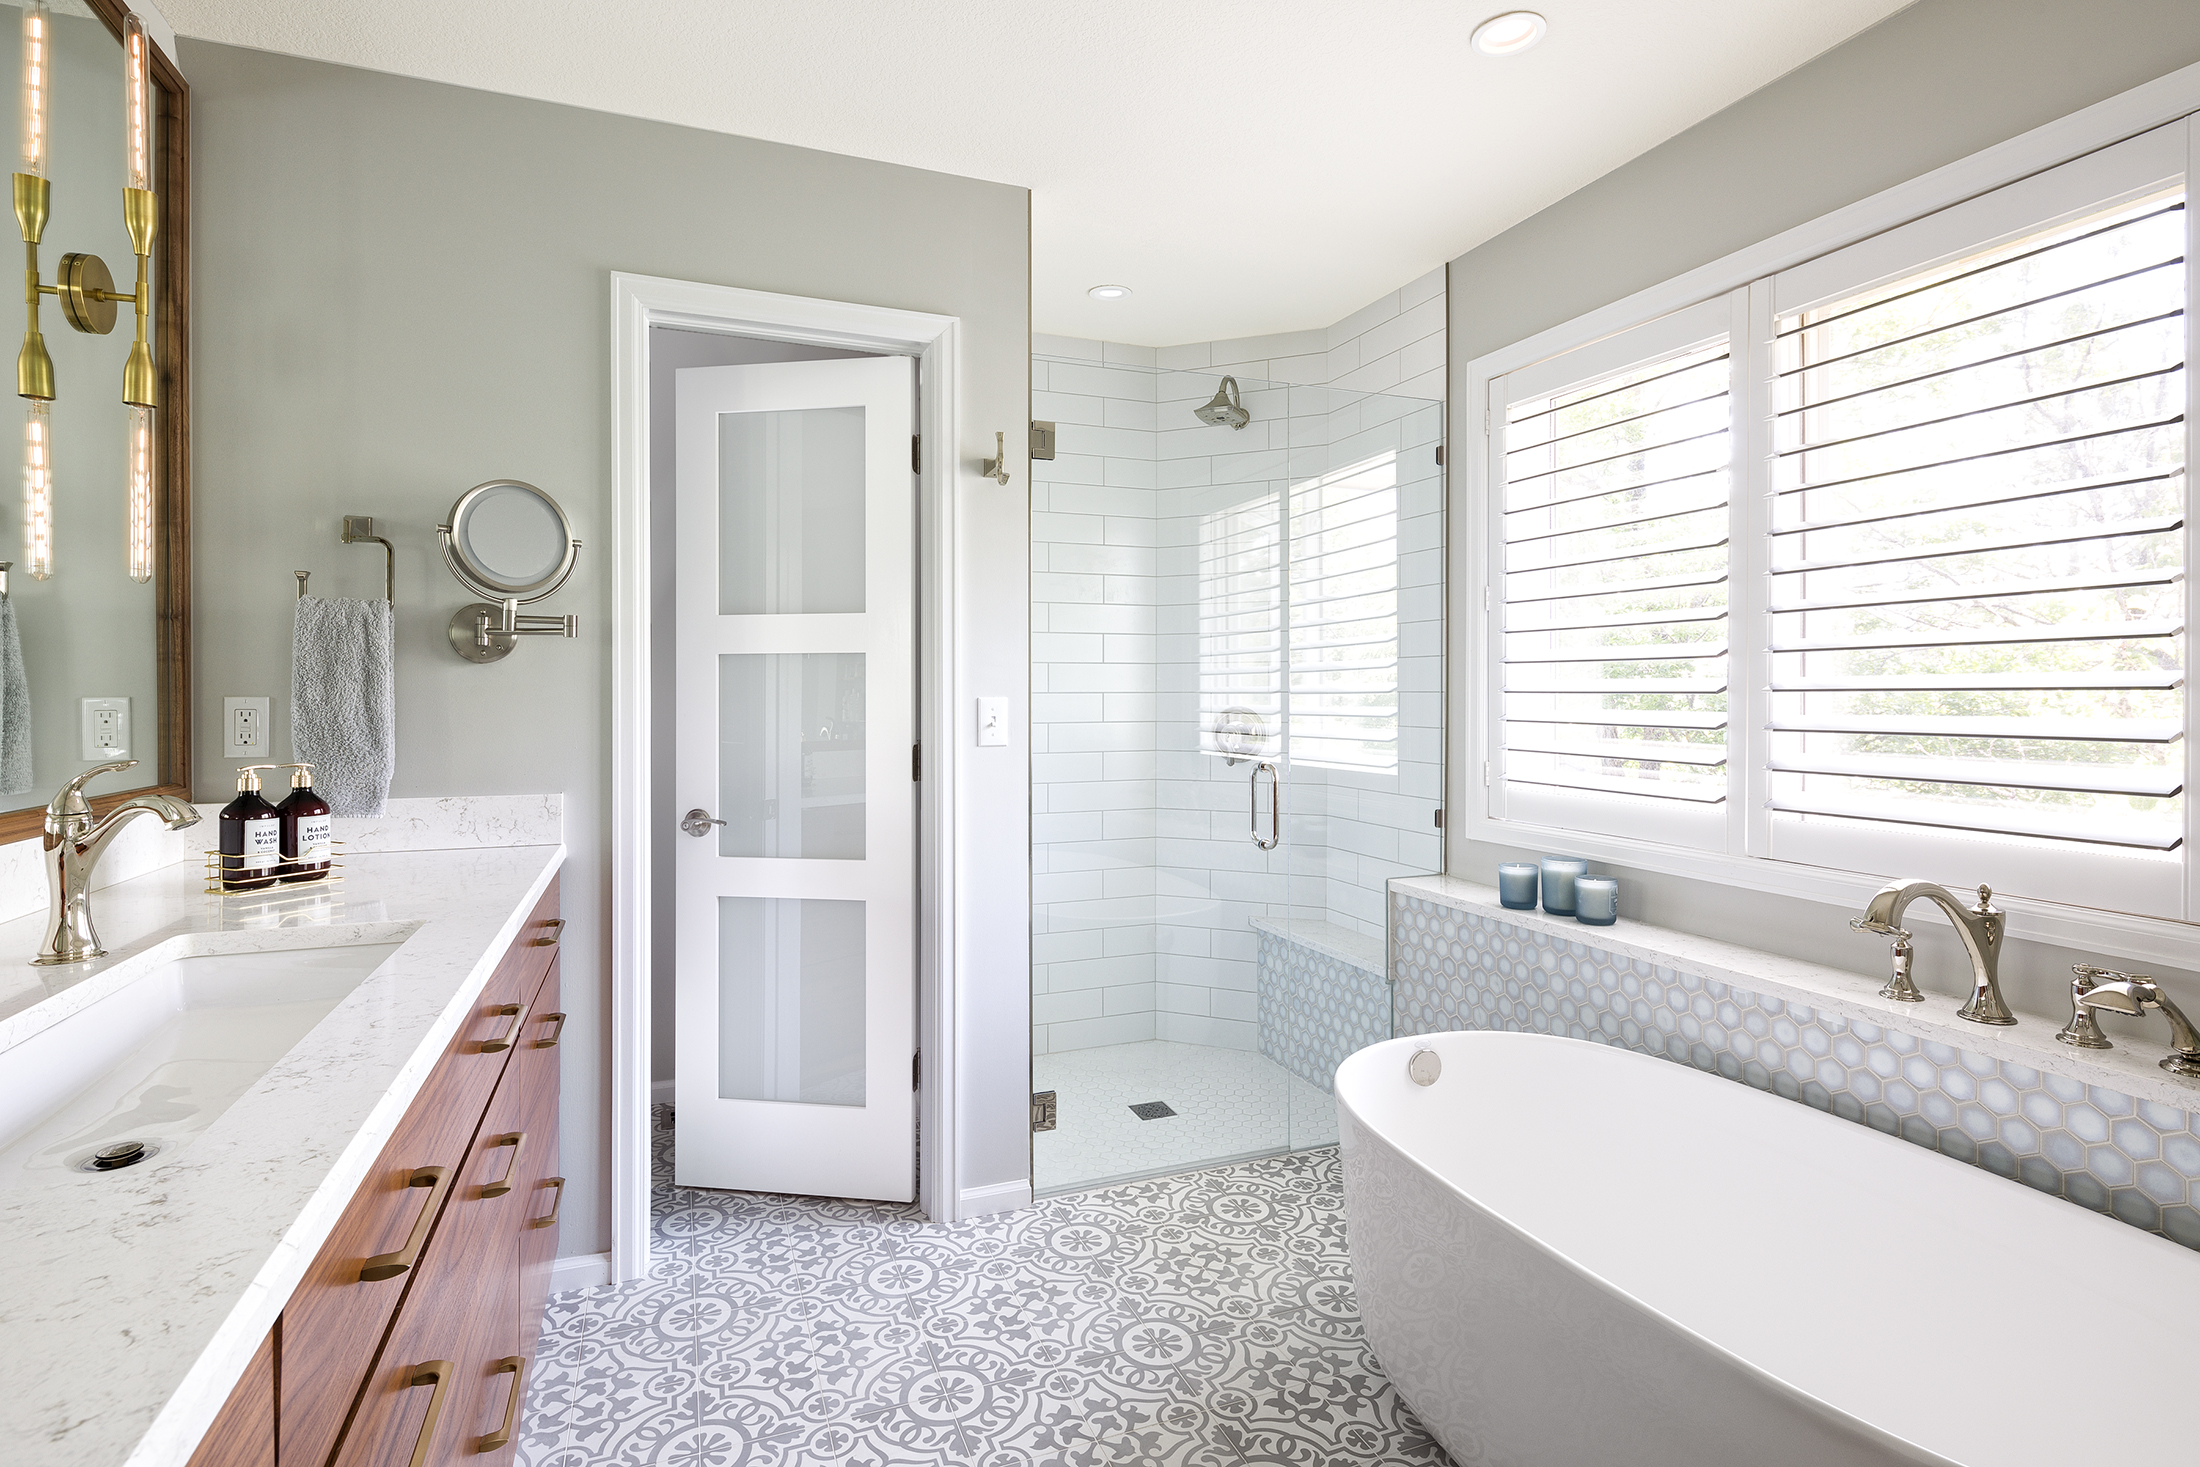 Private Retreat Melton Design Build Boulder Colorado Bathroom Remodel Master